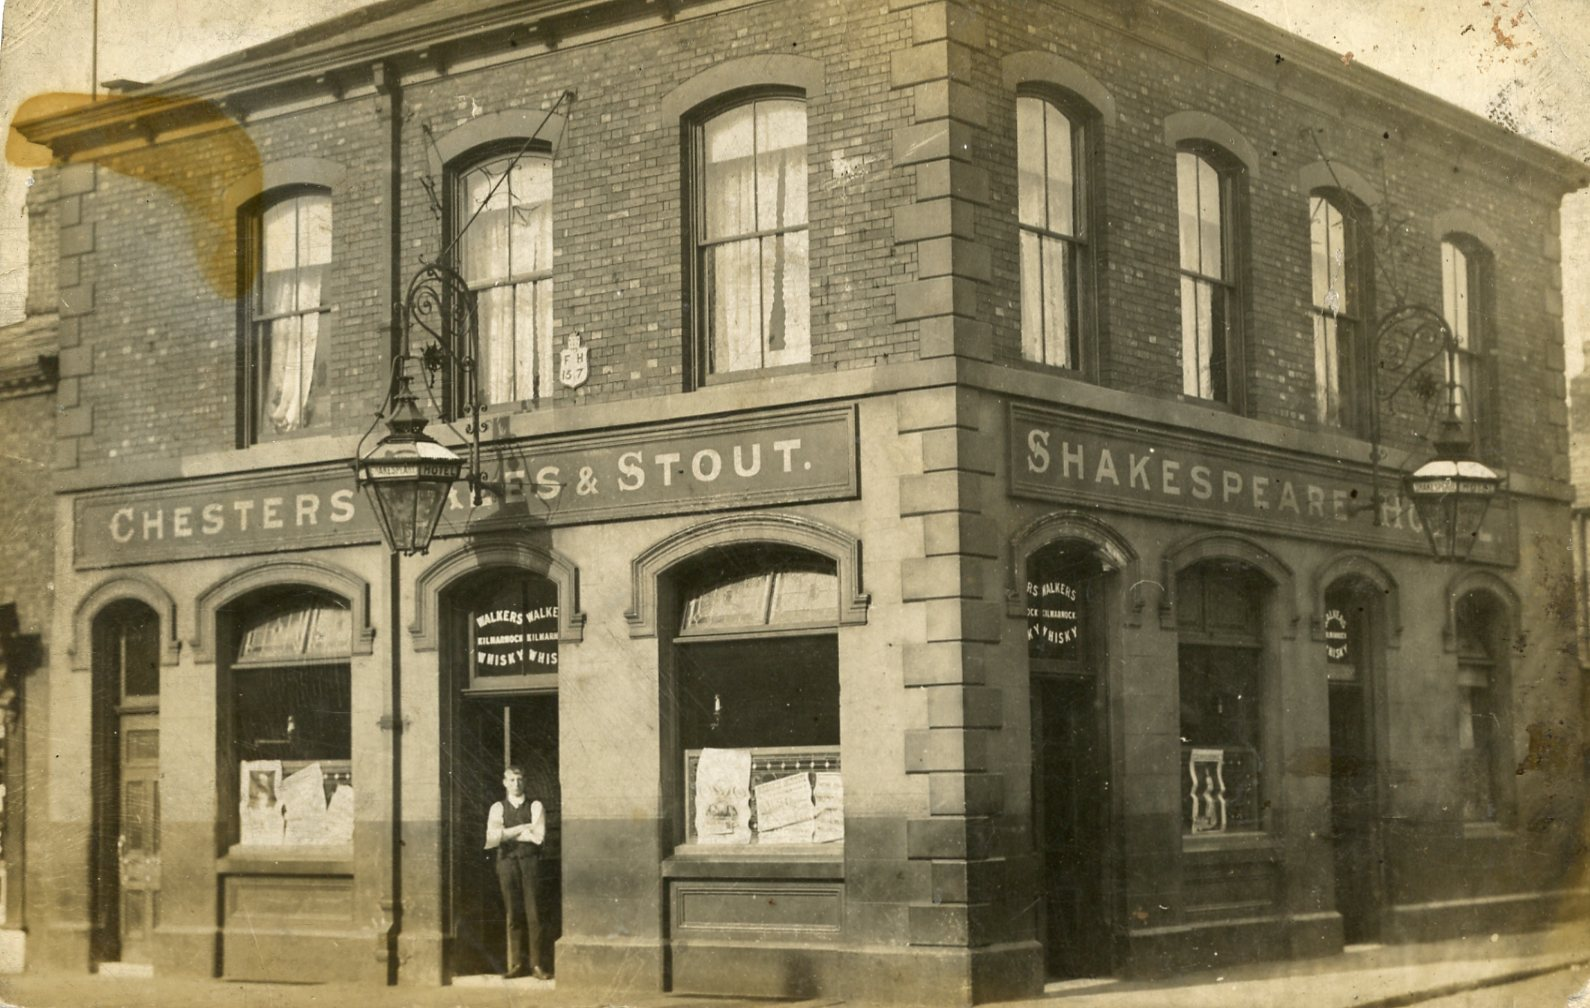 Pubs of Manchester: Shakespeare, Stockport & London Road